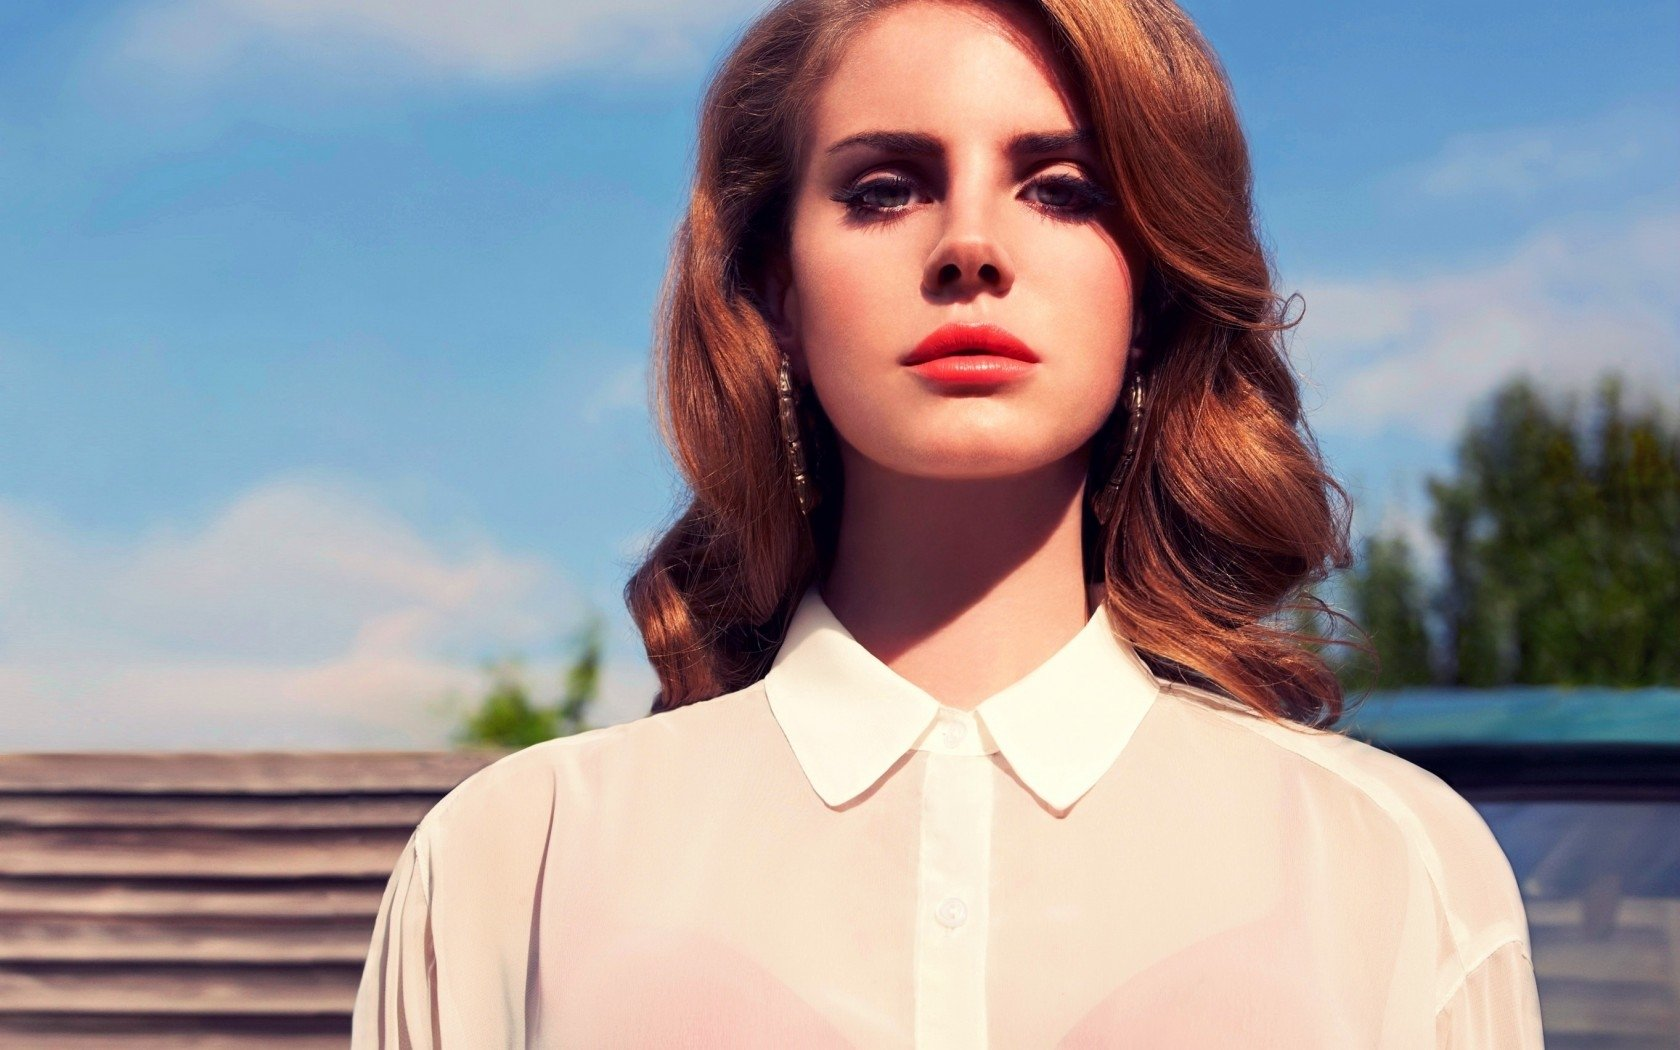 126 Lana Del Rey Hd Wallpapers Background Images Wallpaper Abyss